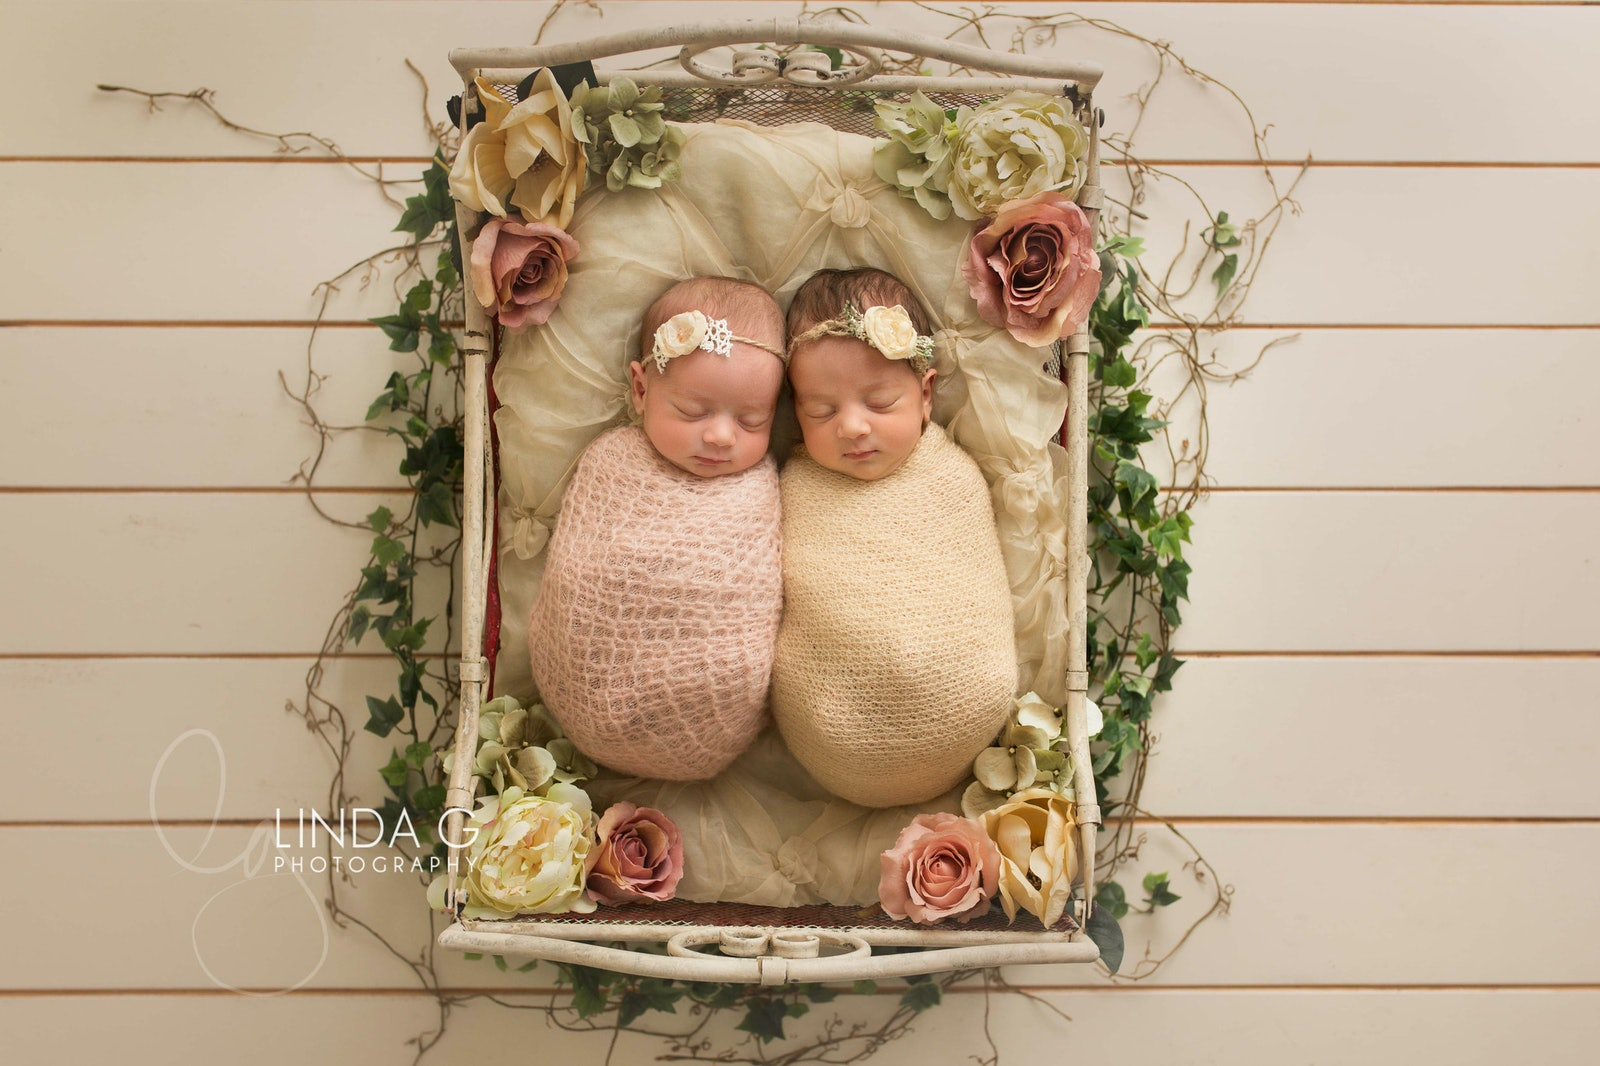 Linda G Photography twins 5